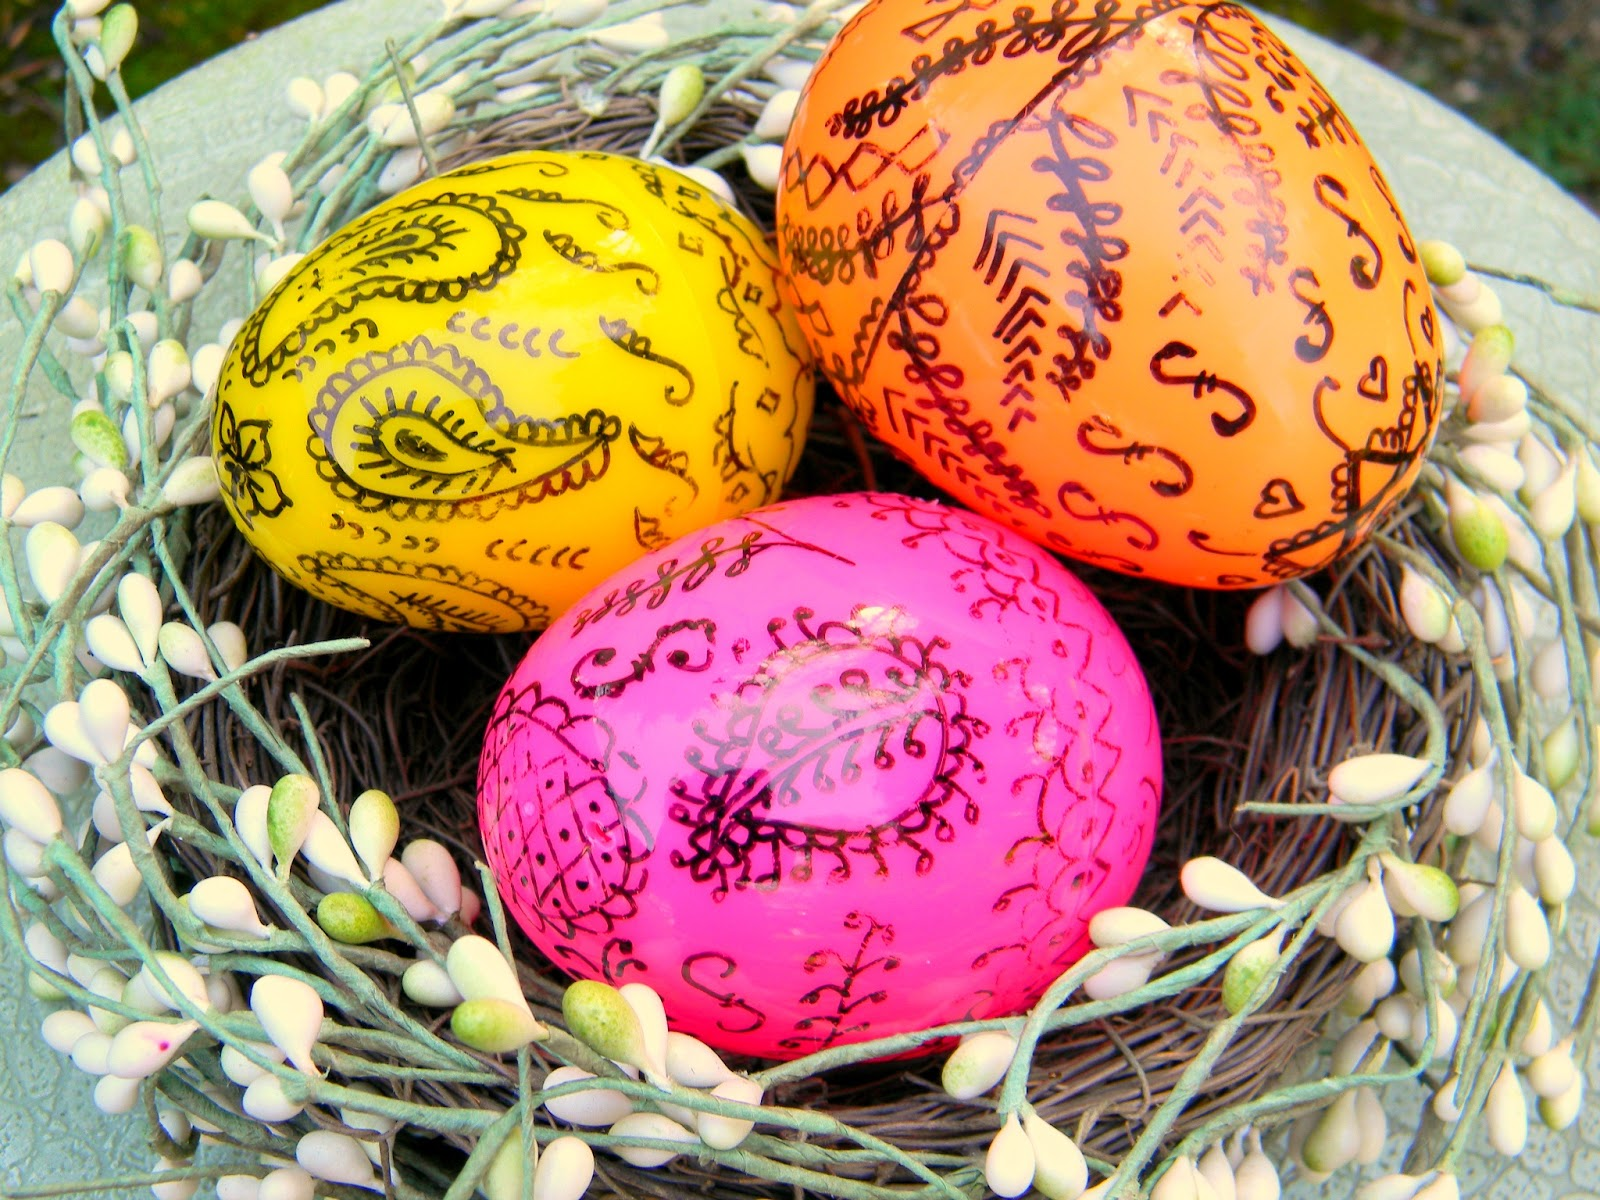 What Other Ways Have You Come Up With To Decorate Plastic Easter Eggs Id Love Hear Them Or Link Your Blog In The Comments So I Can Check